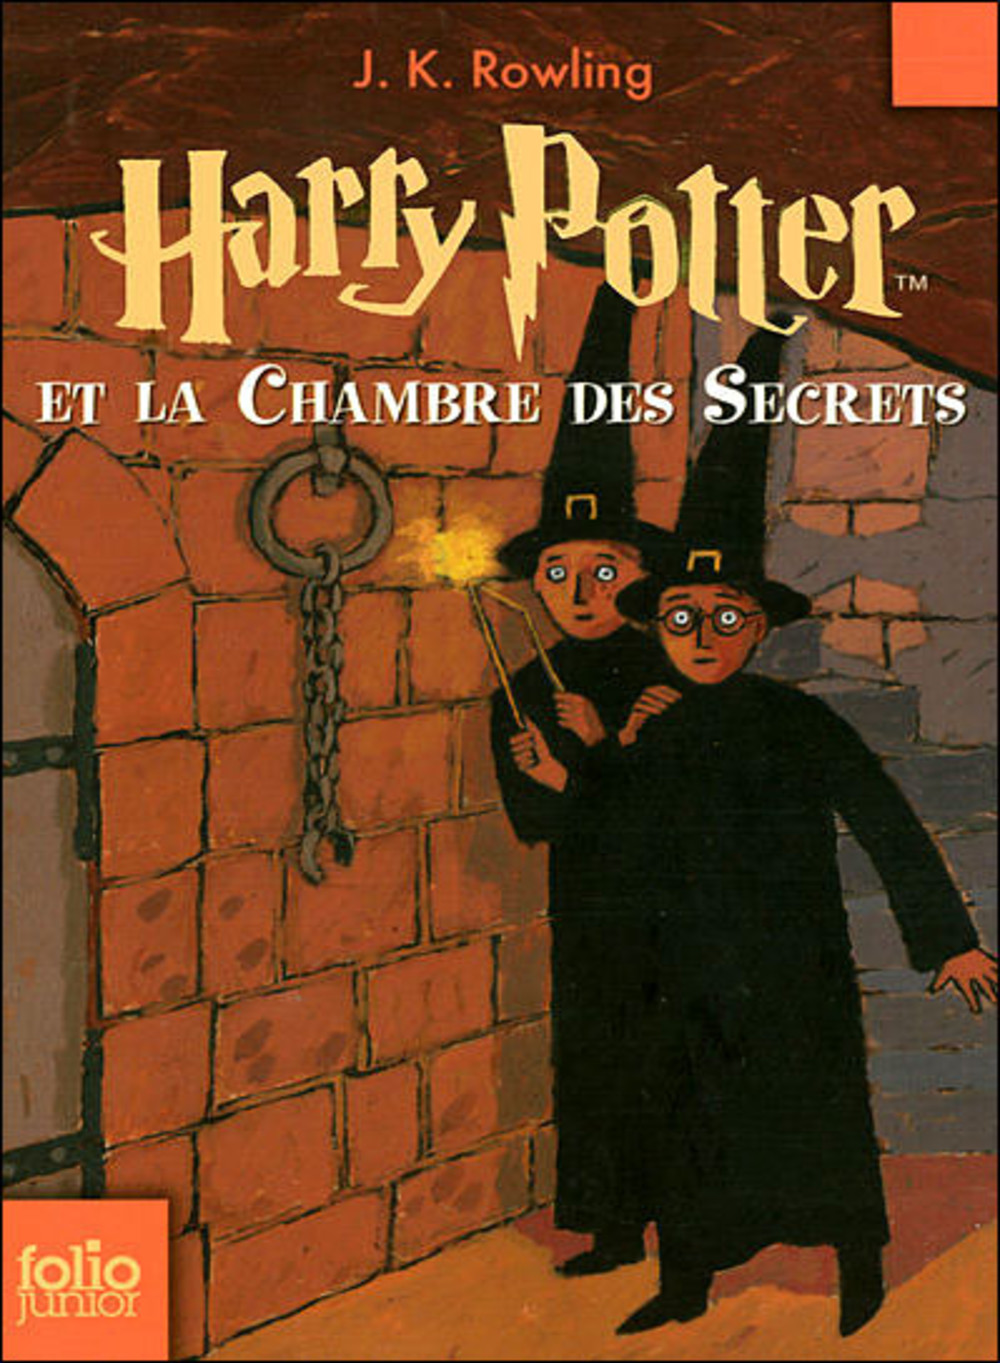 Harry potter et la chambre des secrets harry potter tome 2